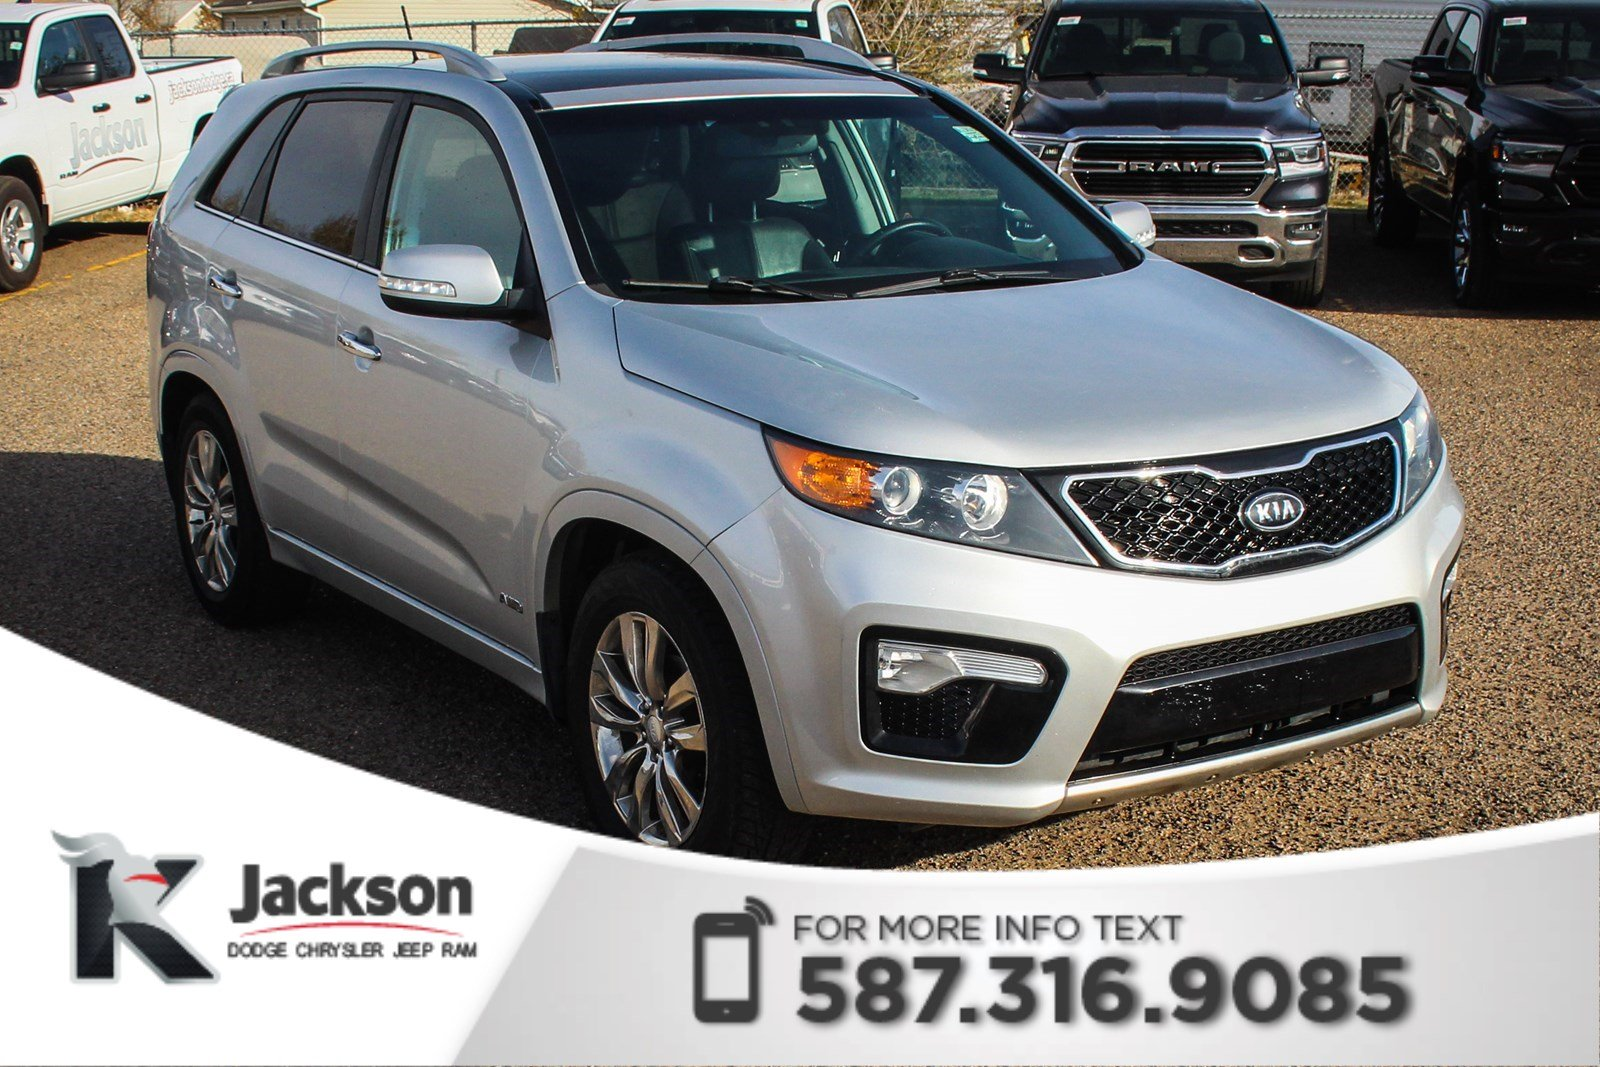 Pre Owned 2013 Kia Sorento SX   NAV, Rear View Camera, Sunroof